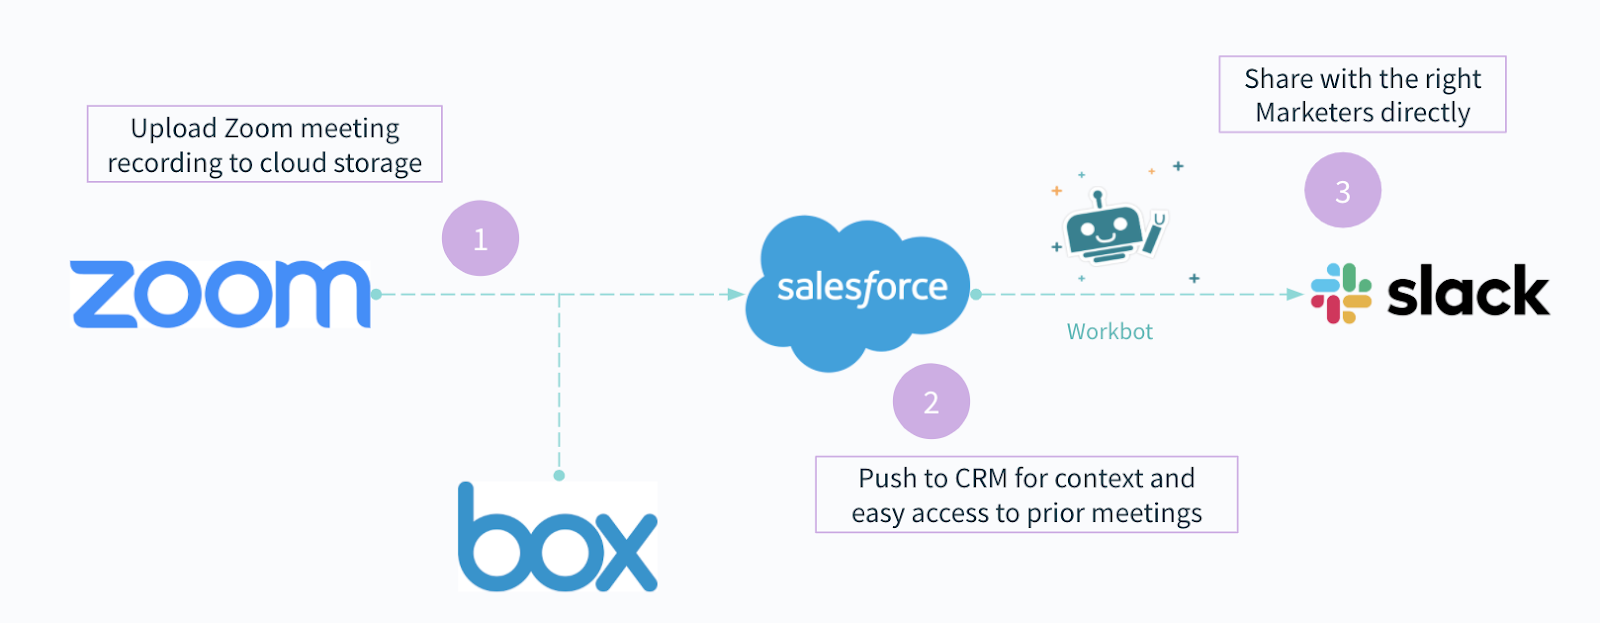 A workflow automation that helps sales reps capture call recordings, store them, add them to the relevant apps, and access them directly via chat.